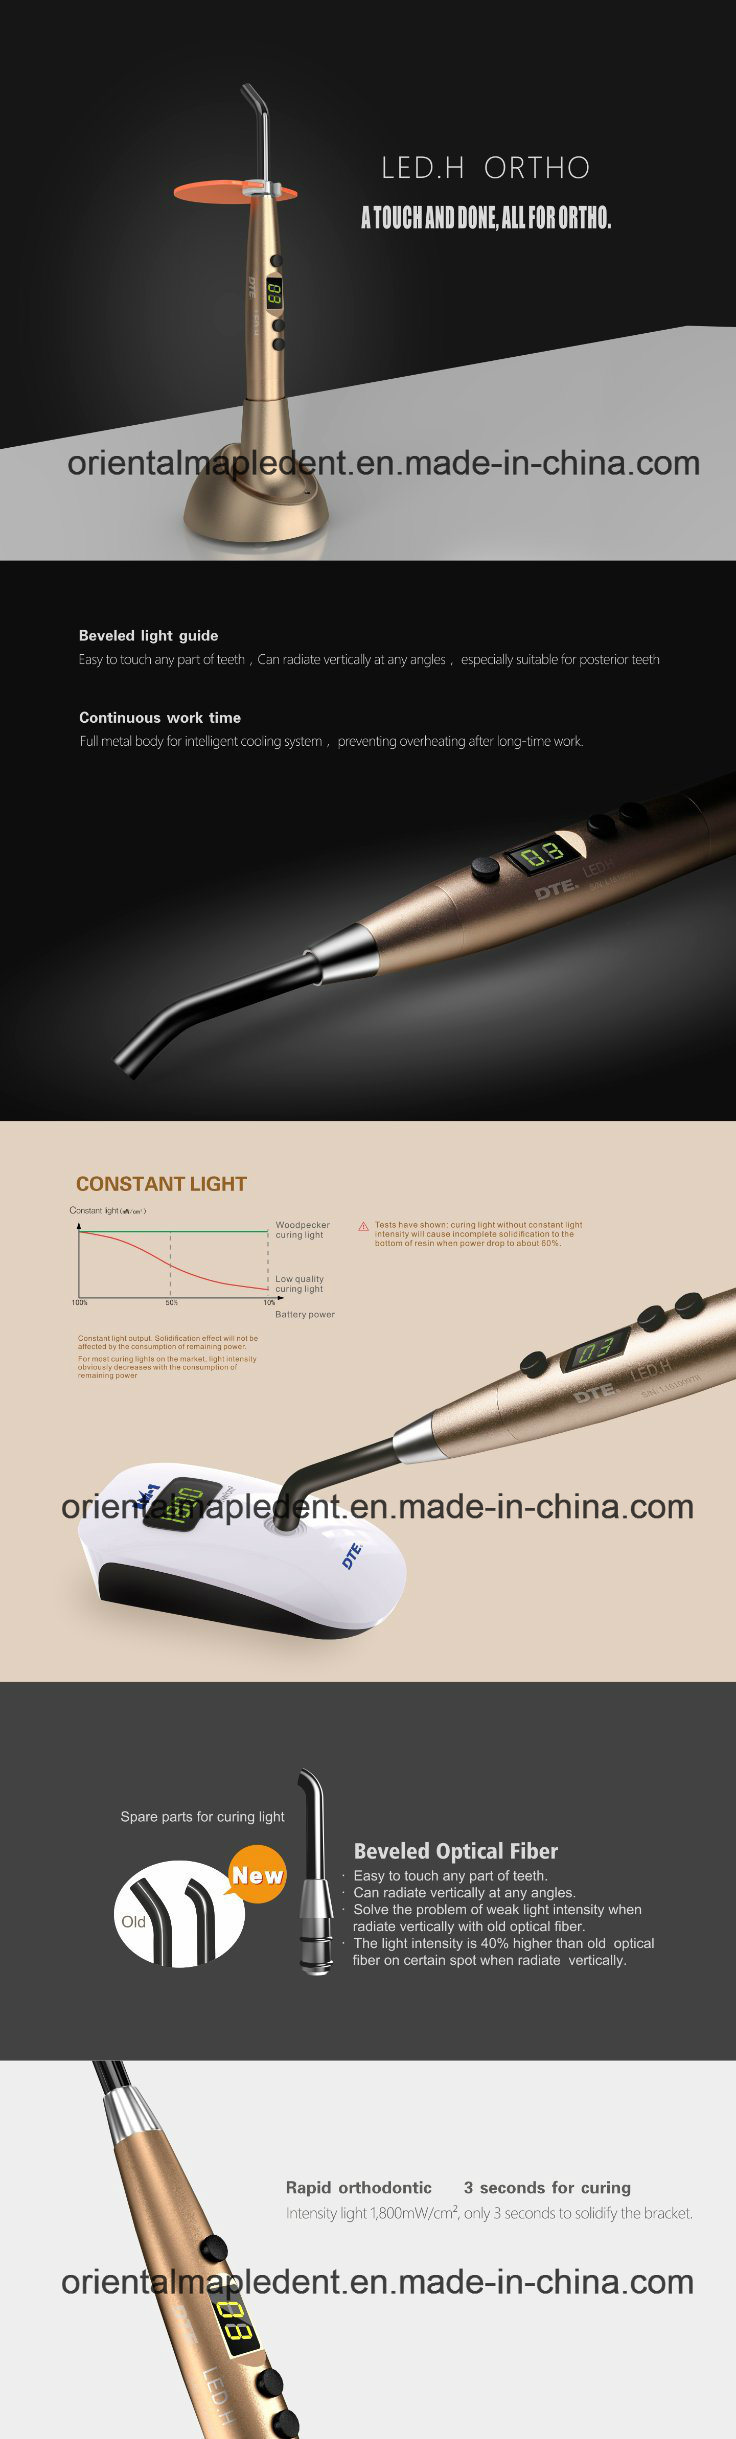 Dental LED H Ortho Orthodontic Curing Light with Light Meter